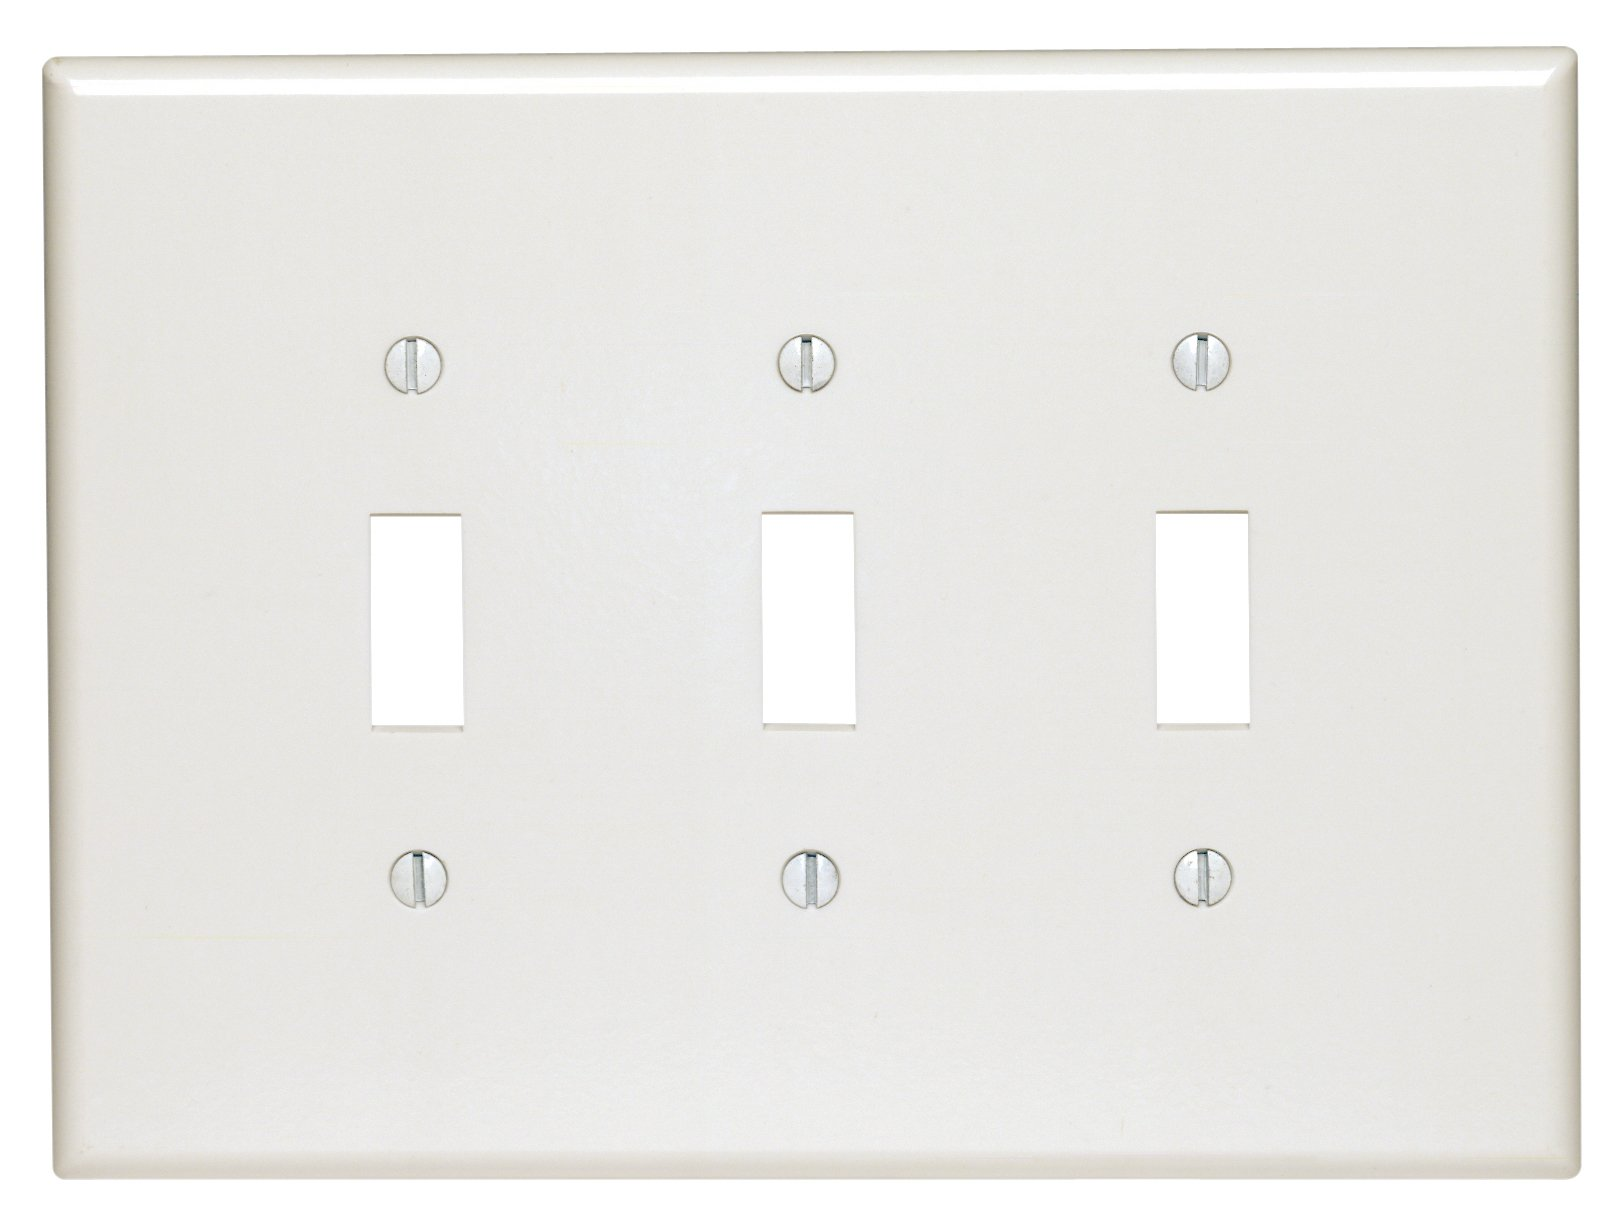 Leviton 88111 3-Gang Toggle Device Switch Wallplate, Oversized, Thermoset, Device Mount, White by Leviton